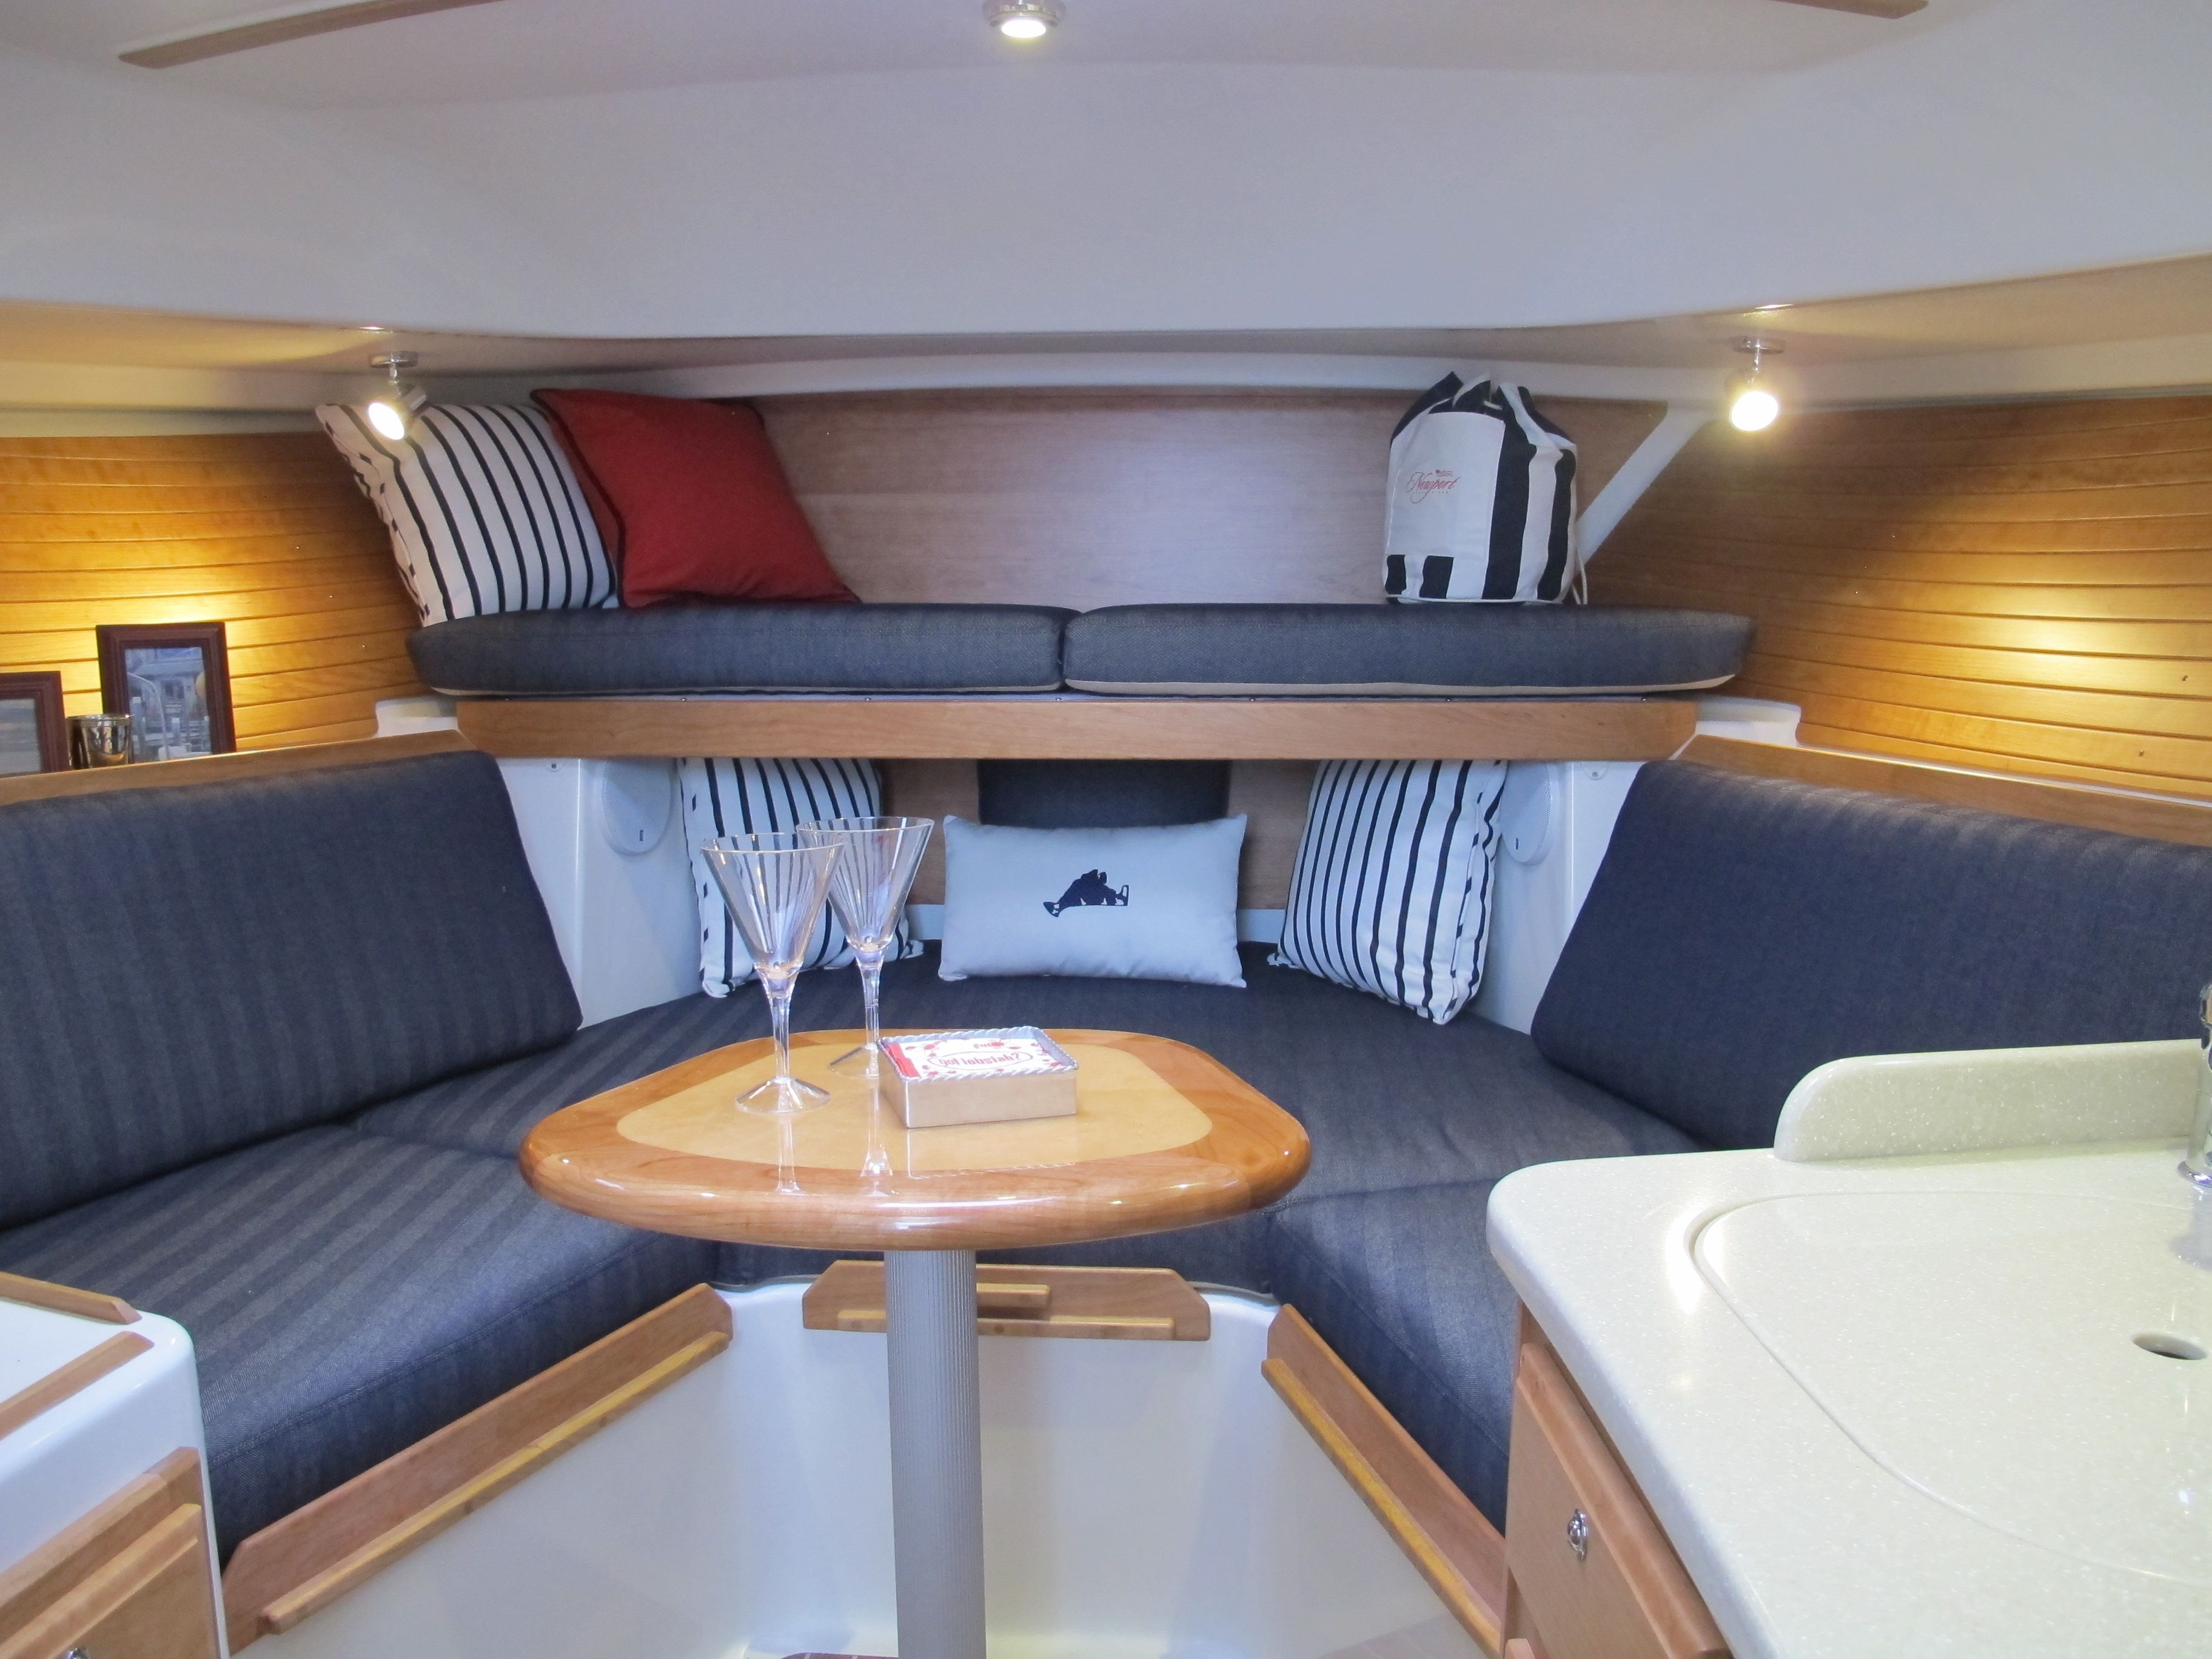 Boston Yacht Sales; Back Cove 30, seating arrangement options. Custom decor by Boston Yacht Sales and S & S Fabric Products